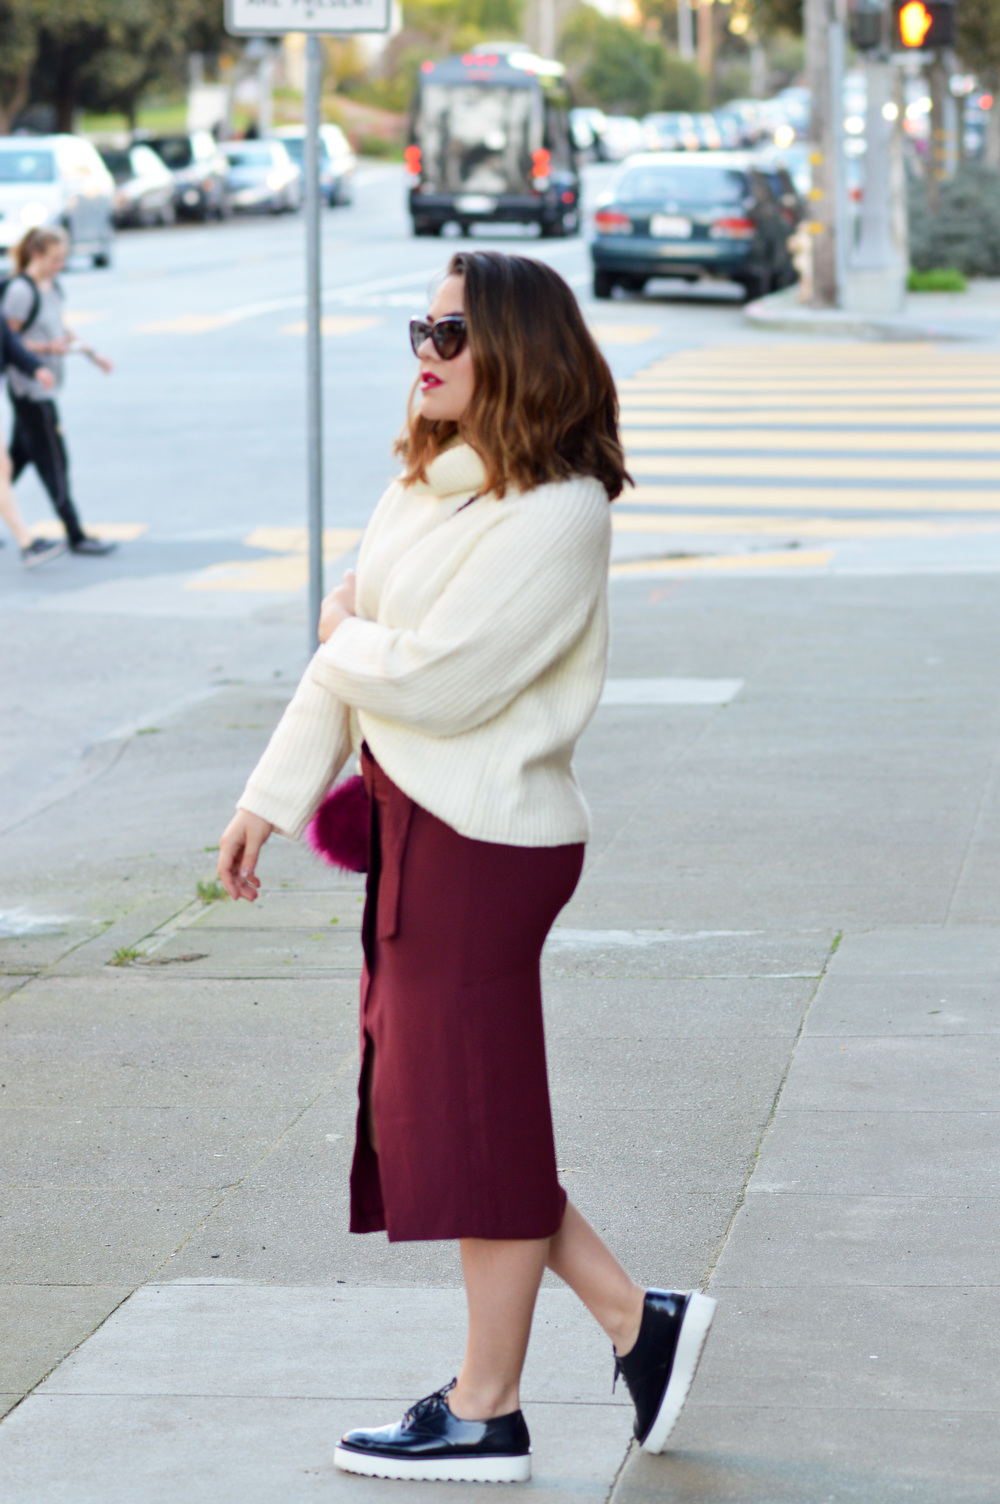 Colors of the Season, Maroon Skirt and Oversized Sweater via. www.birdieshoots.com